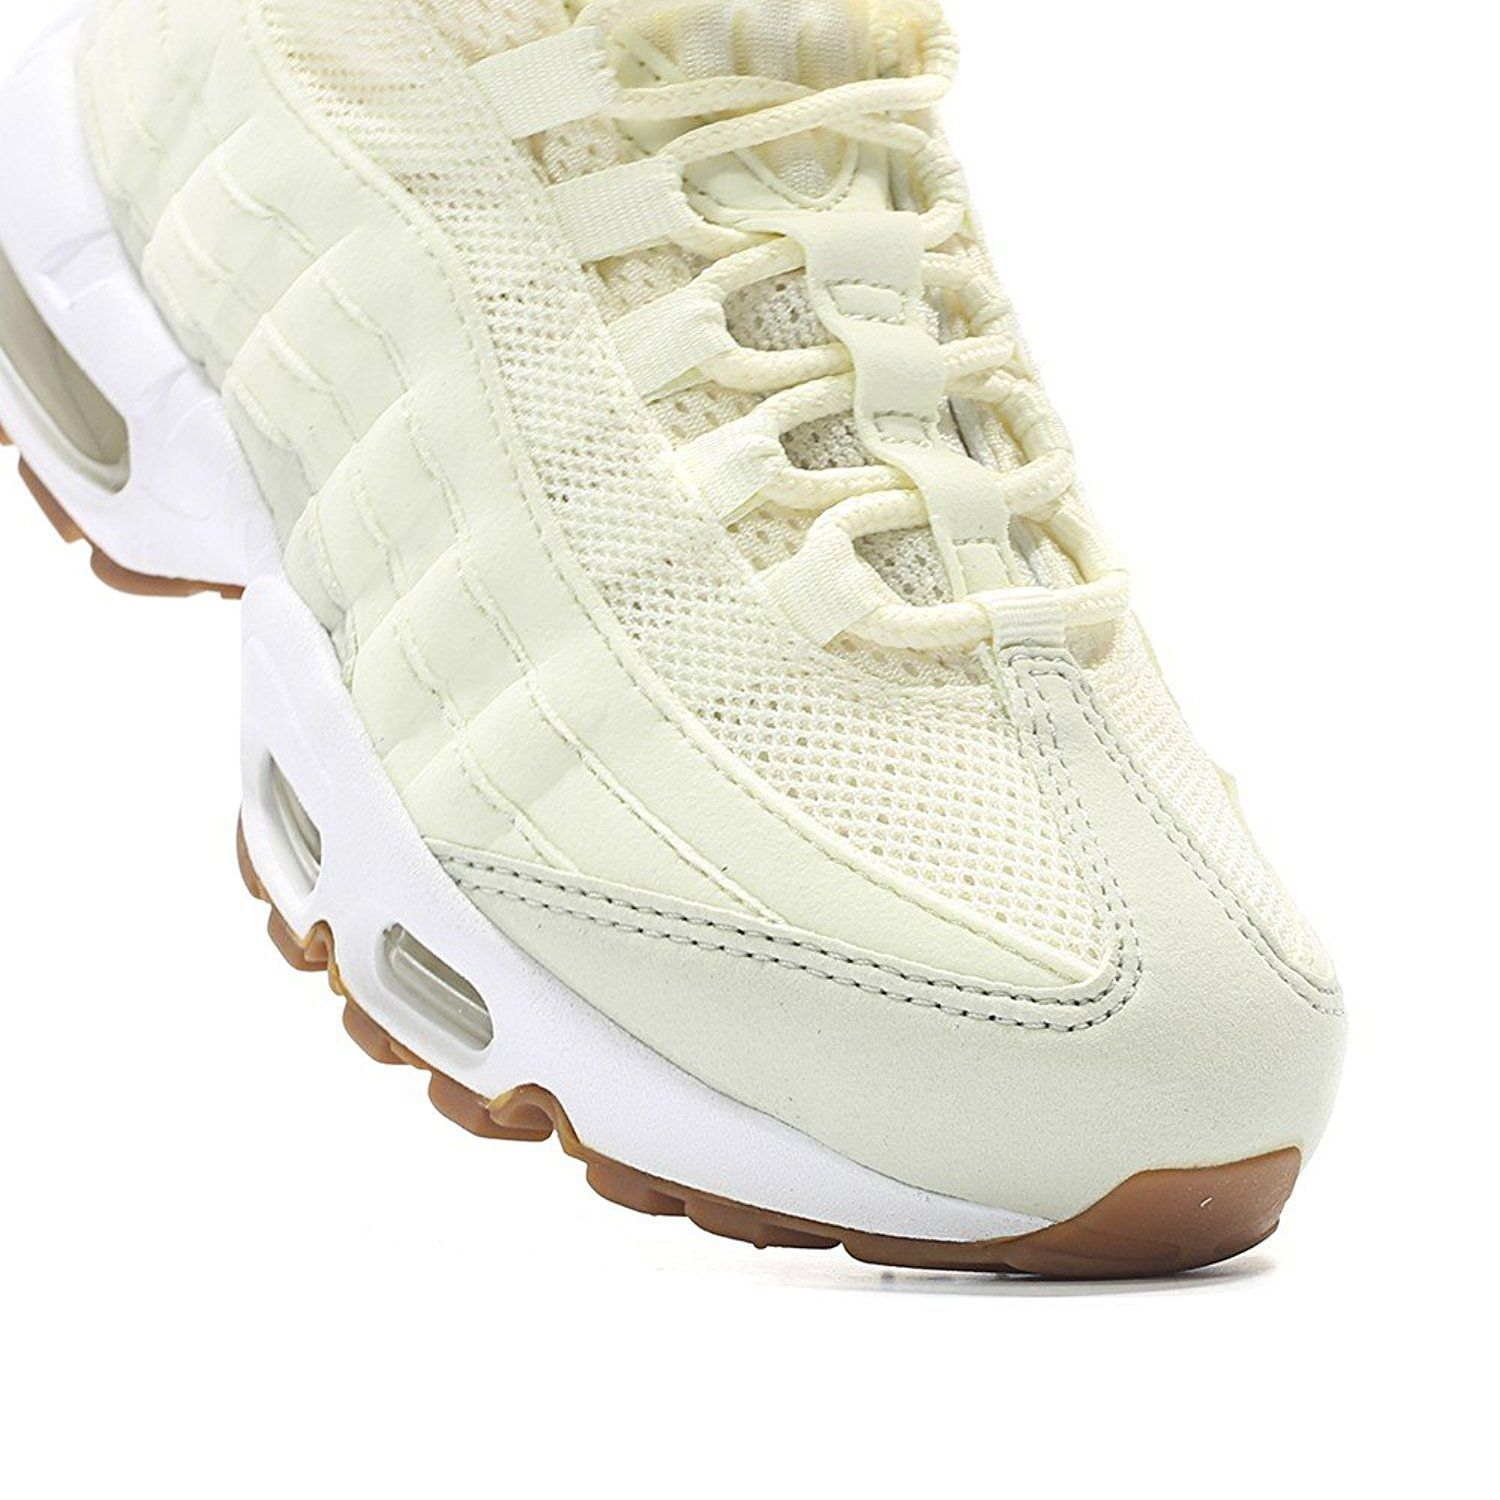 512499773b6 authentique 2018 air max x Coussin air max UL soldes nike 19 Amming 860836-001  nike air max 95 femme amazone